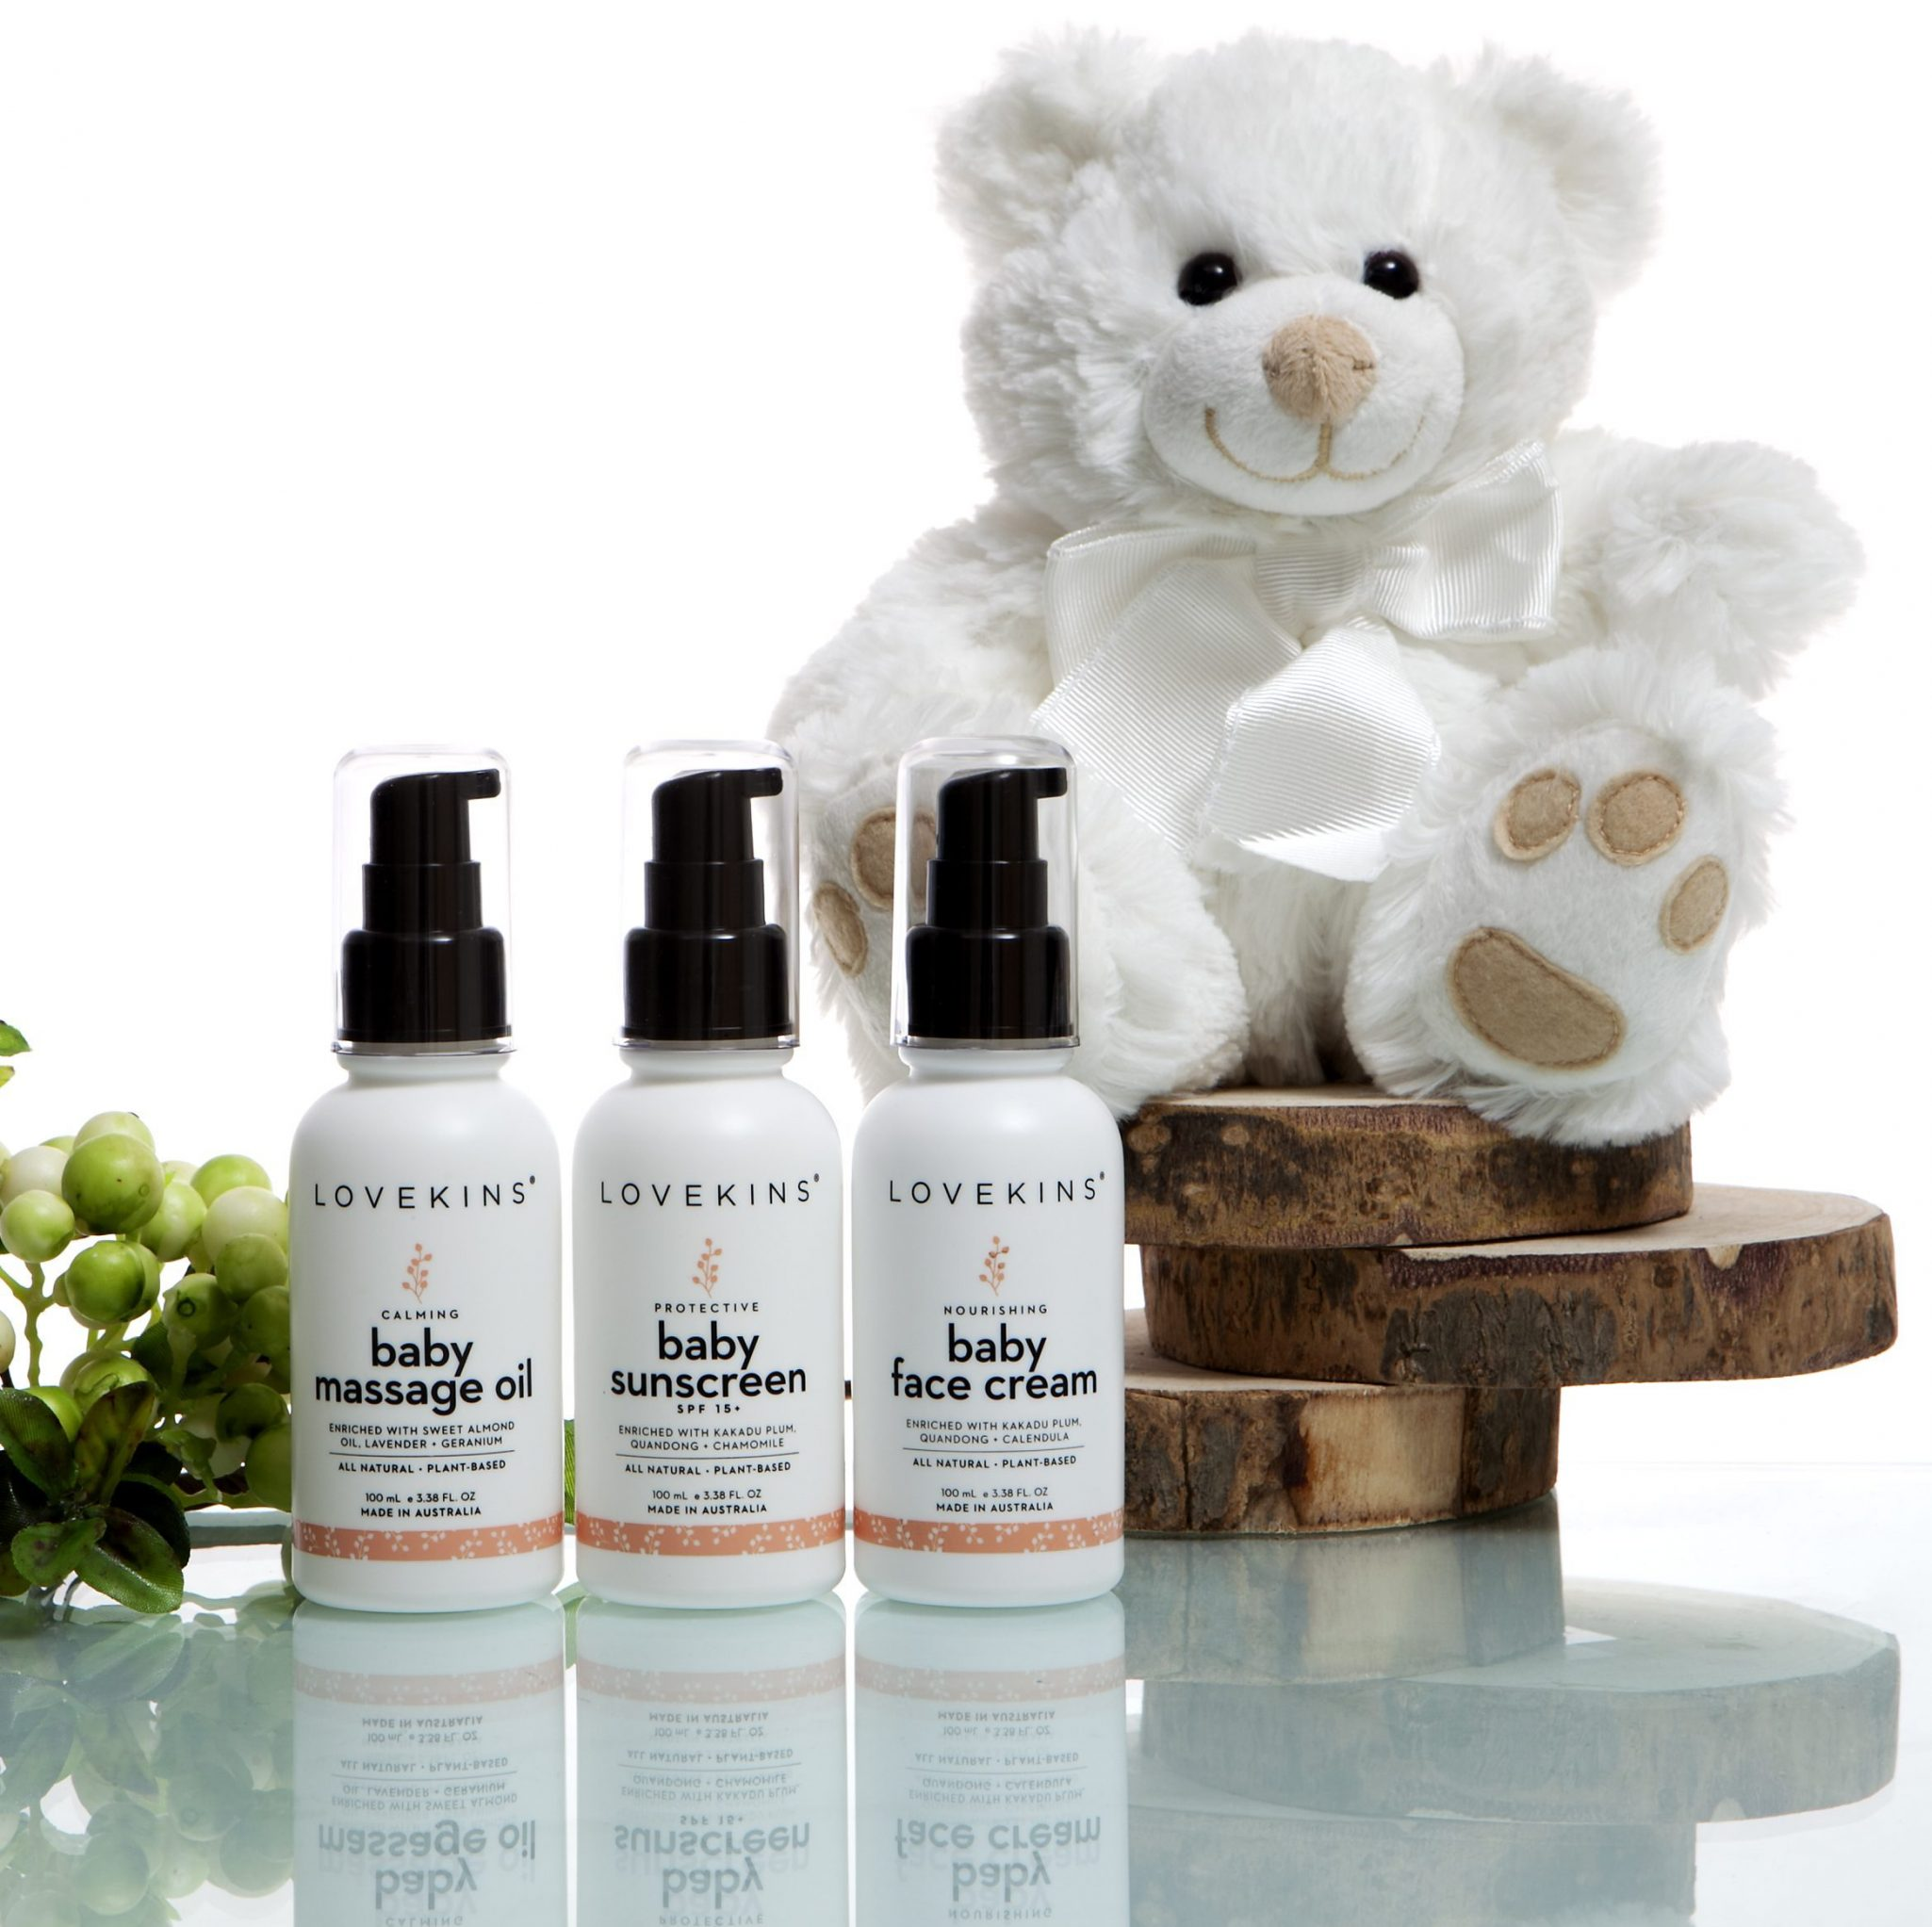 Lifestyle-bear-massage-oil-sunscreen-face-cream-group-e1490842111964